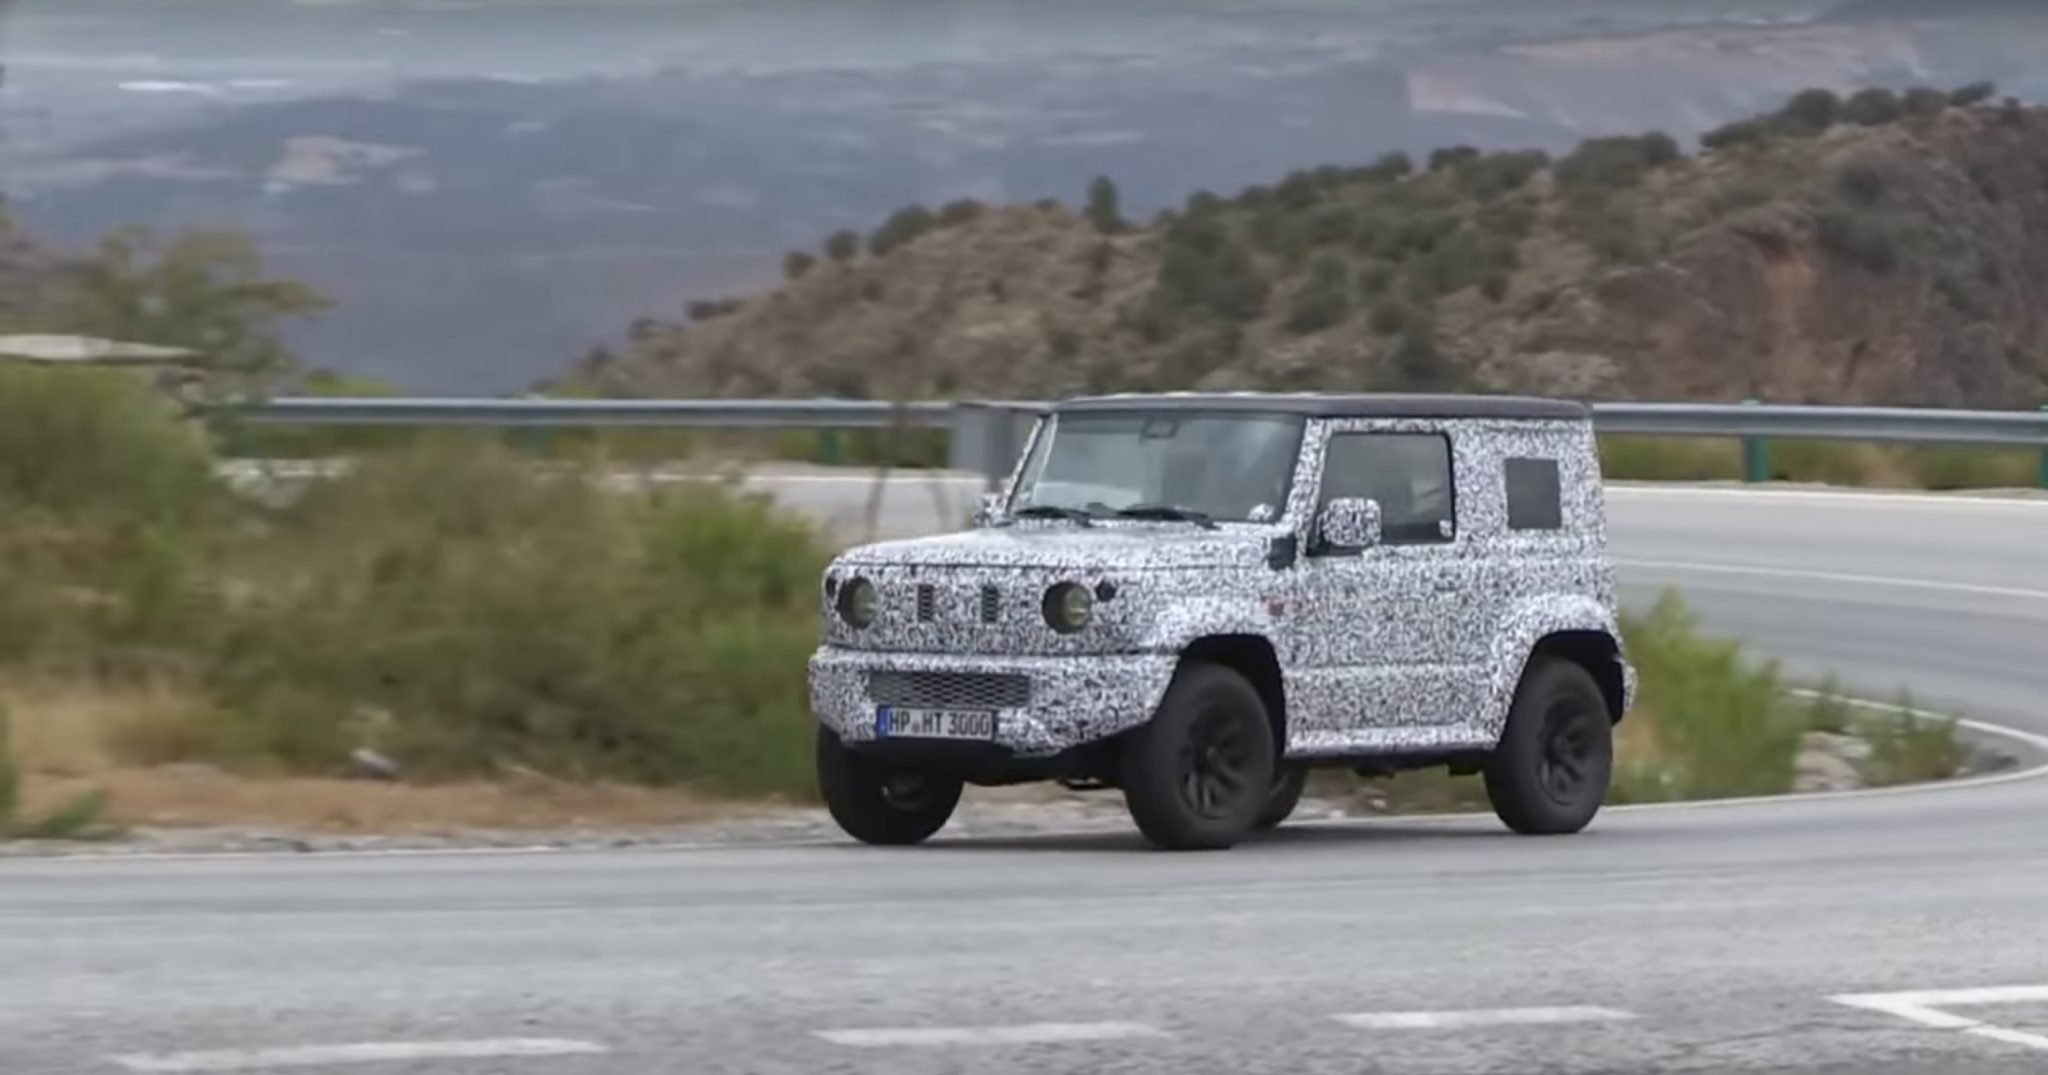 Watch a video of the 2019 Suzuki Jimny